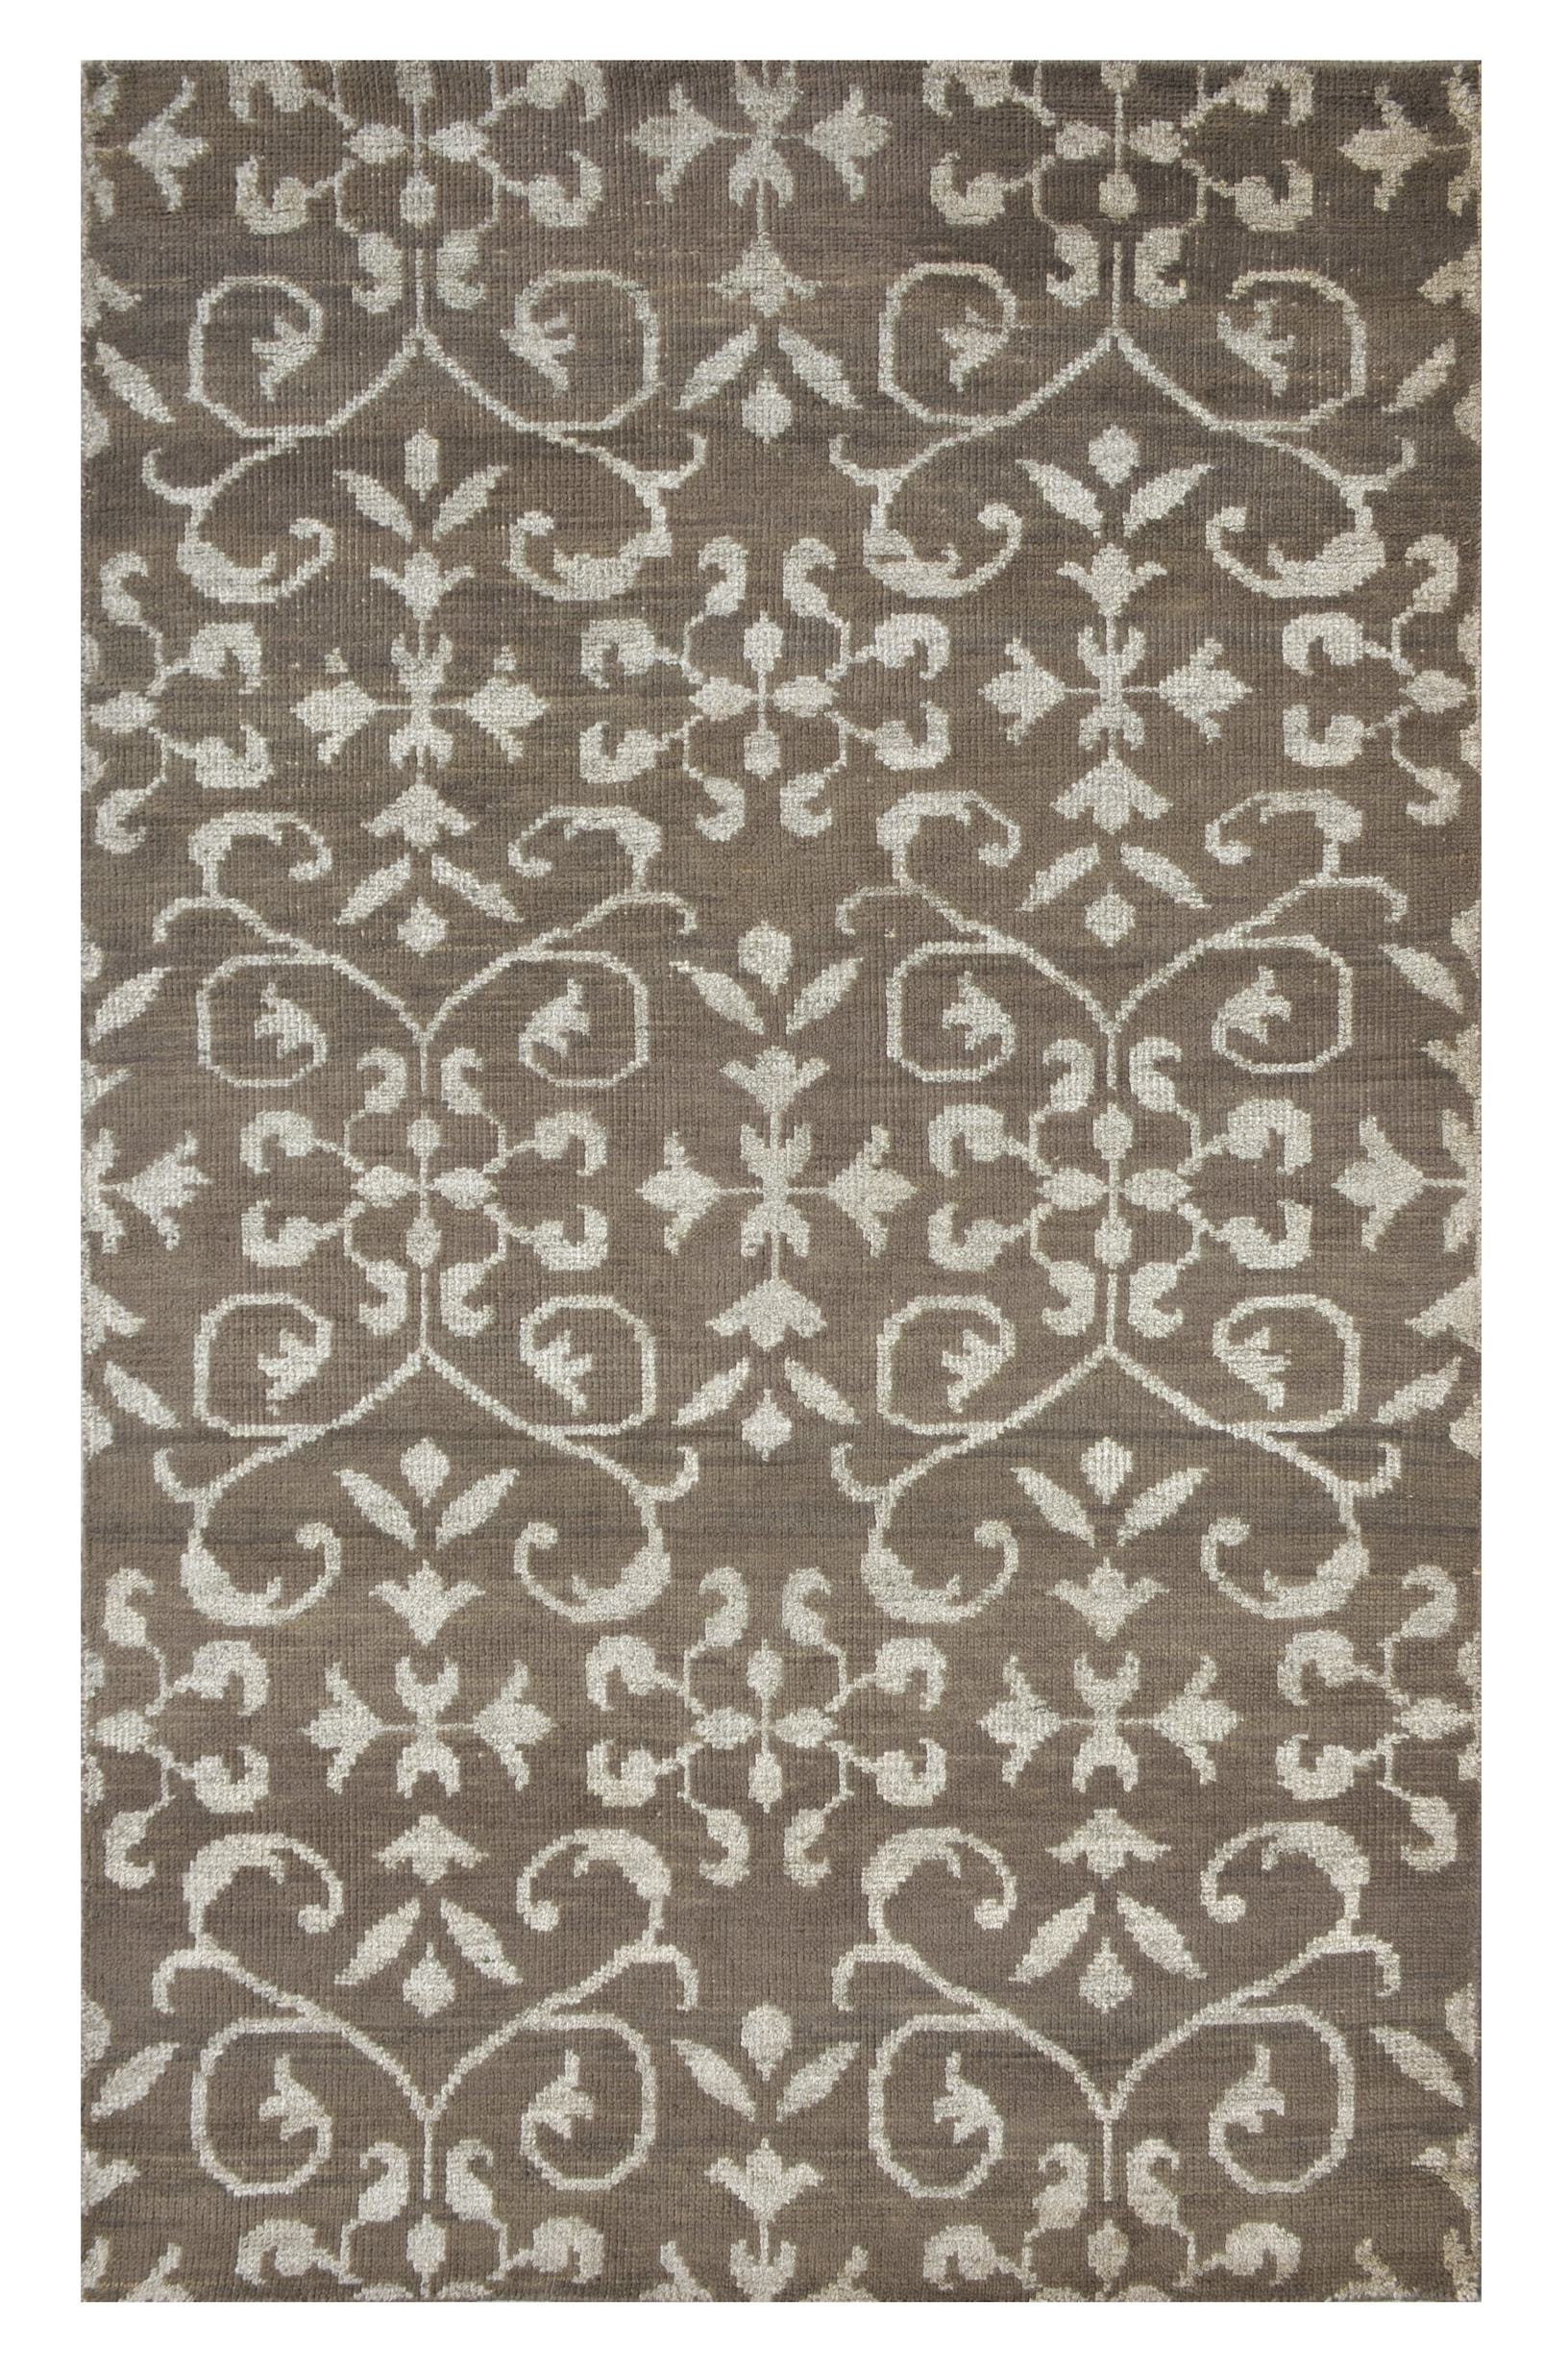 Tabitha Hand Knotted Rug by House of Rugs - Home Artisan